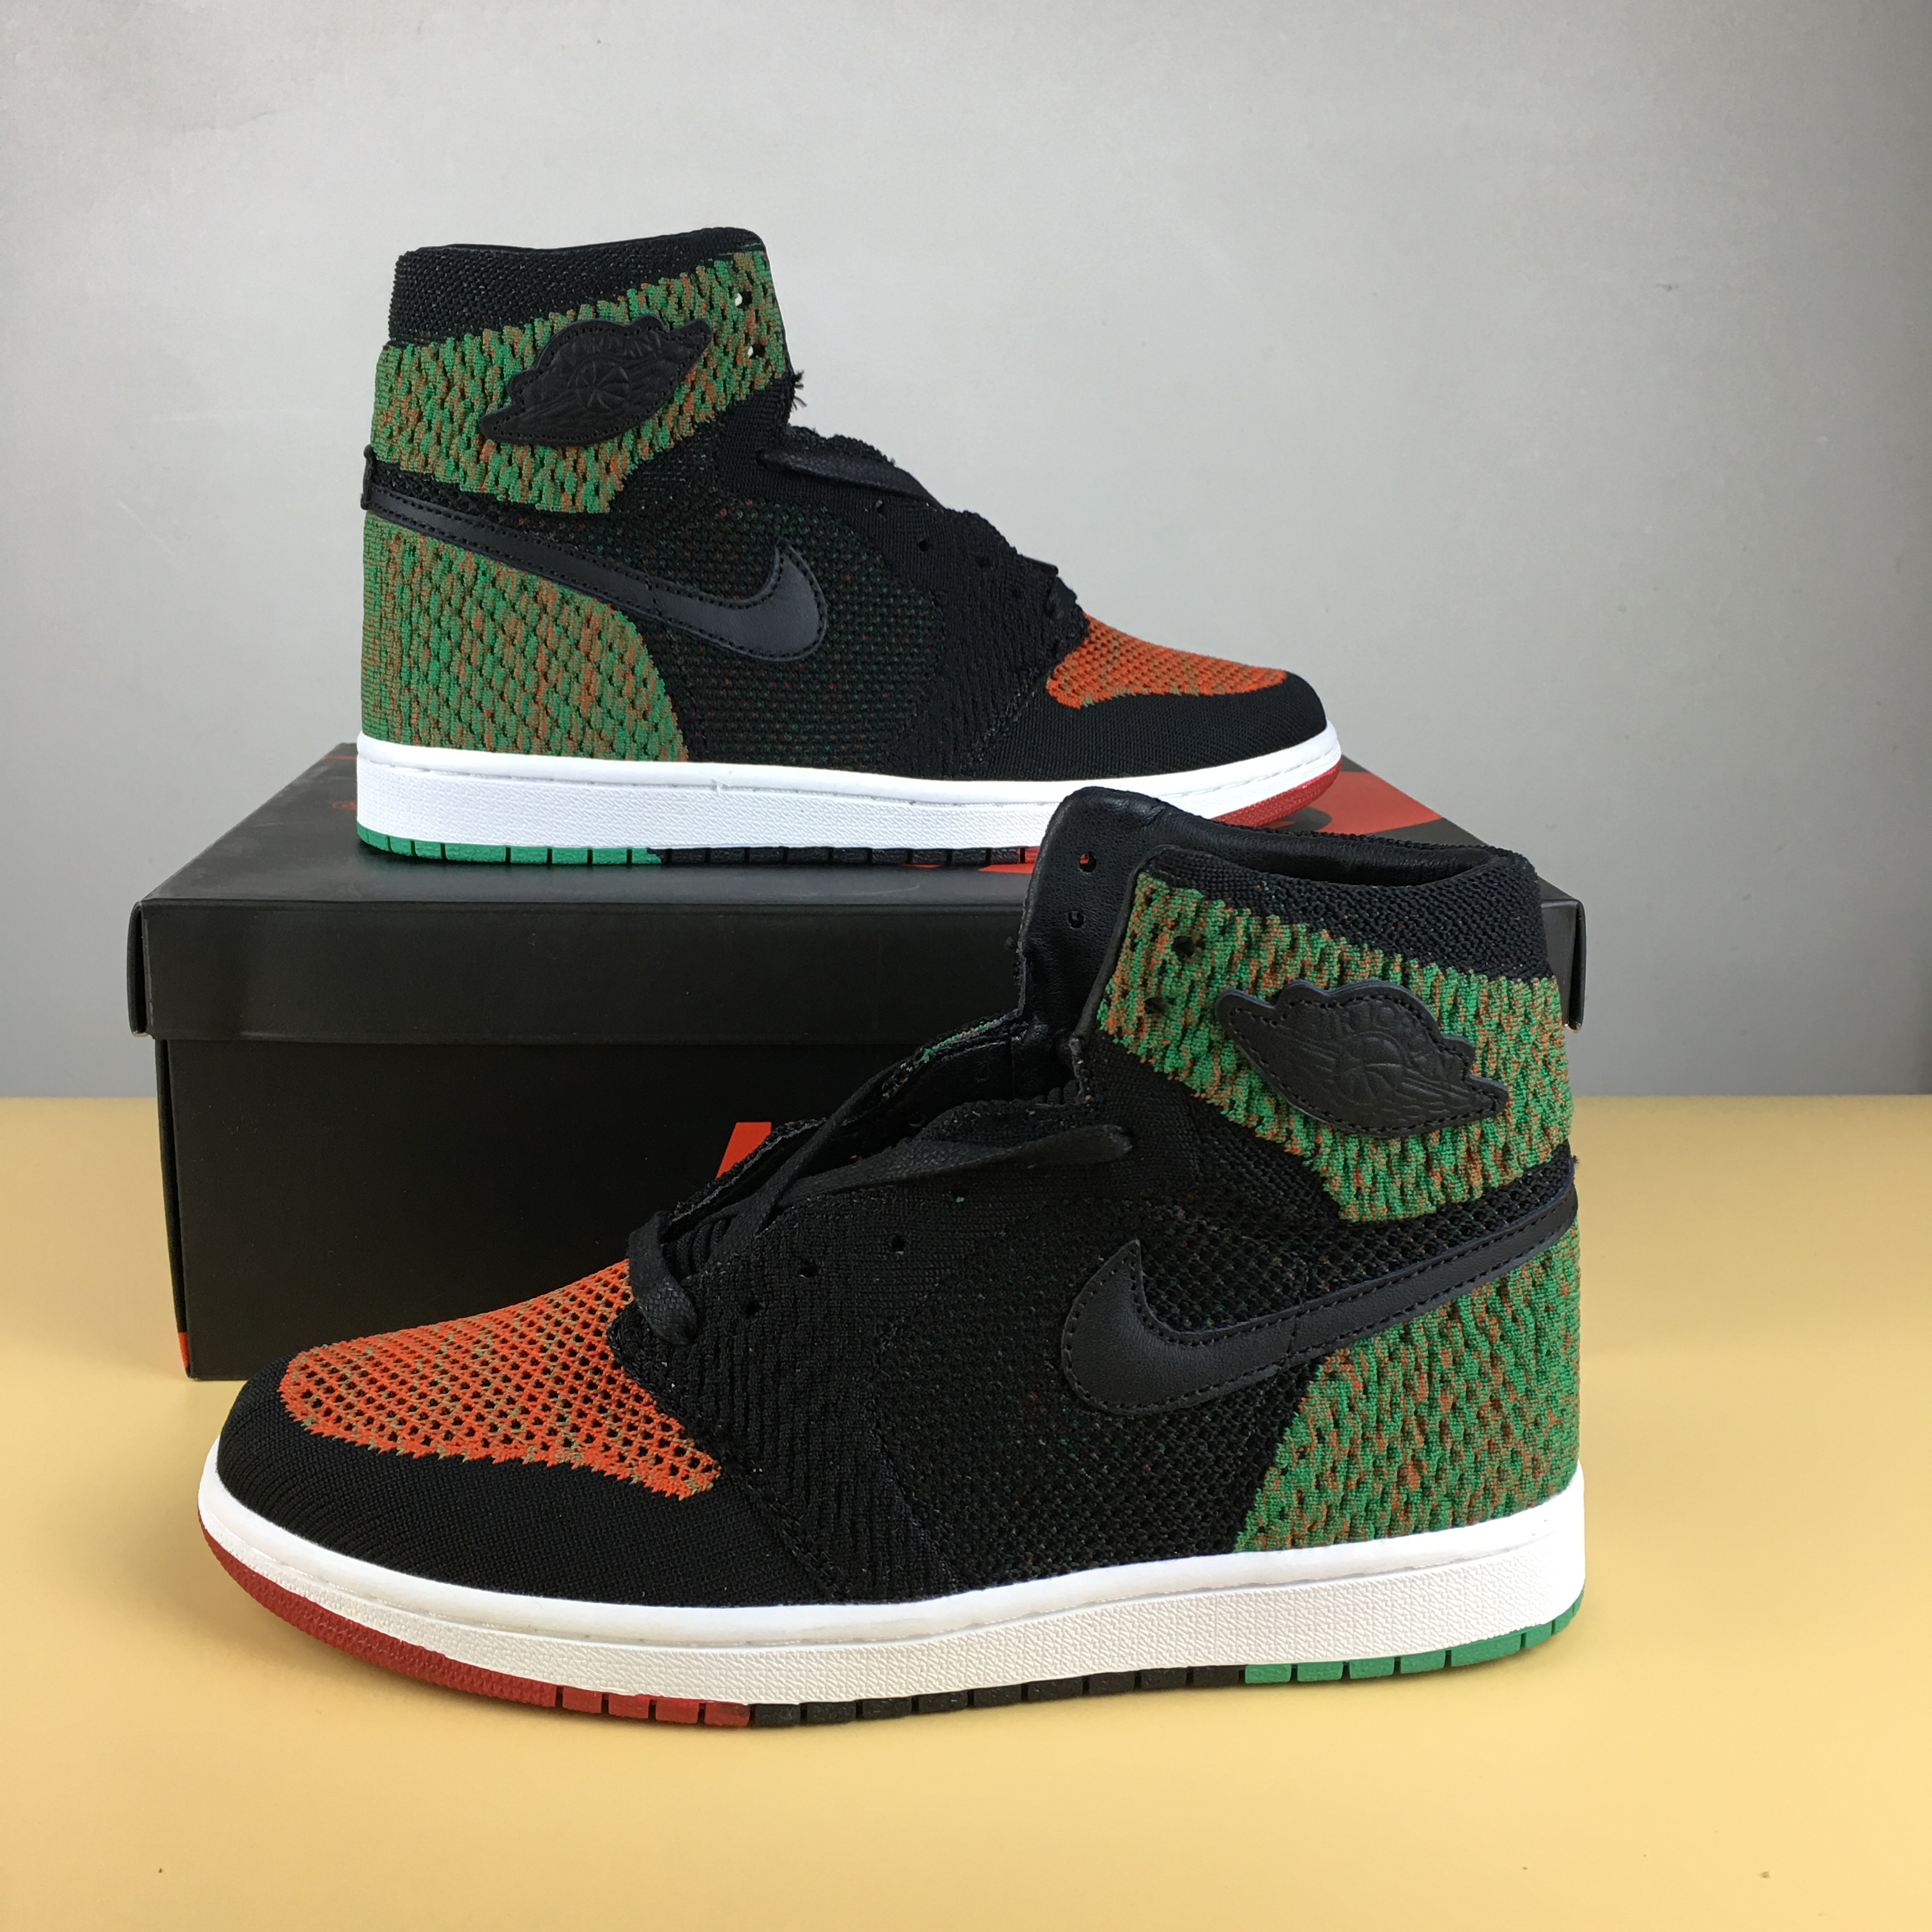 New Men Jordan 1 Flyknit BHM Shoes